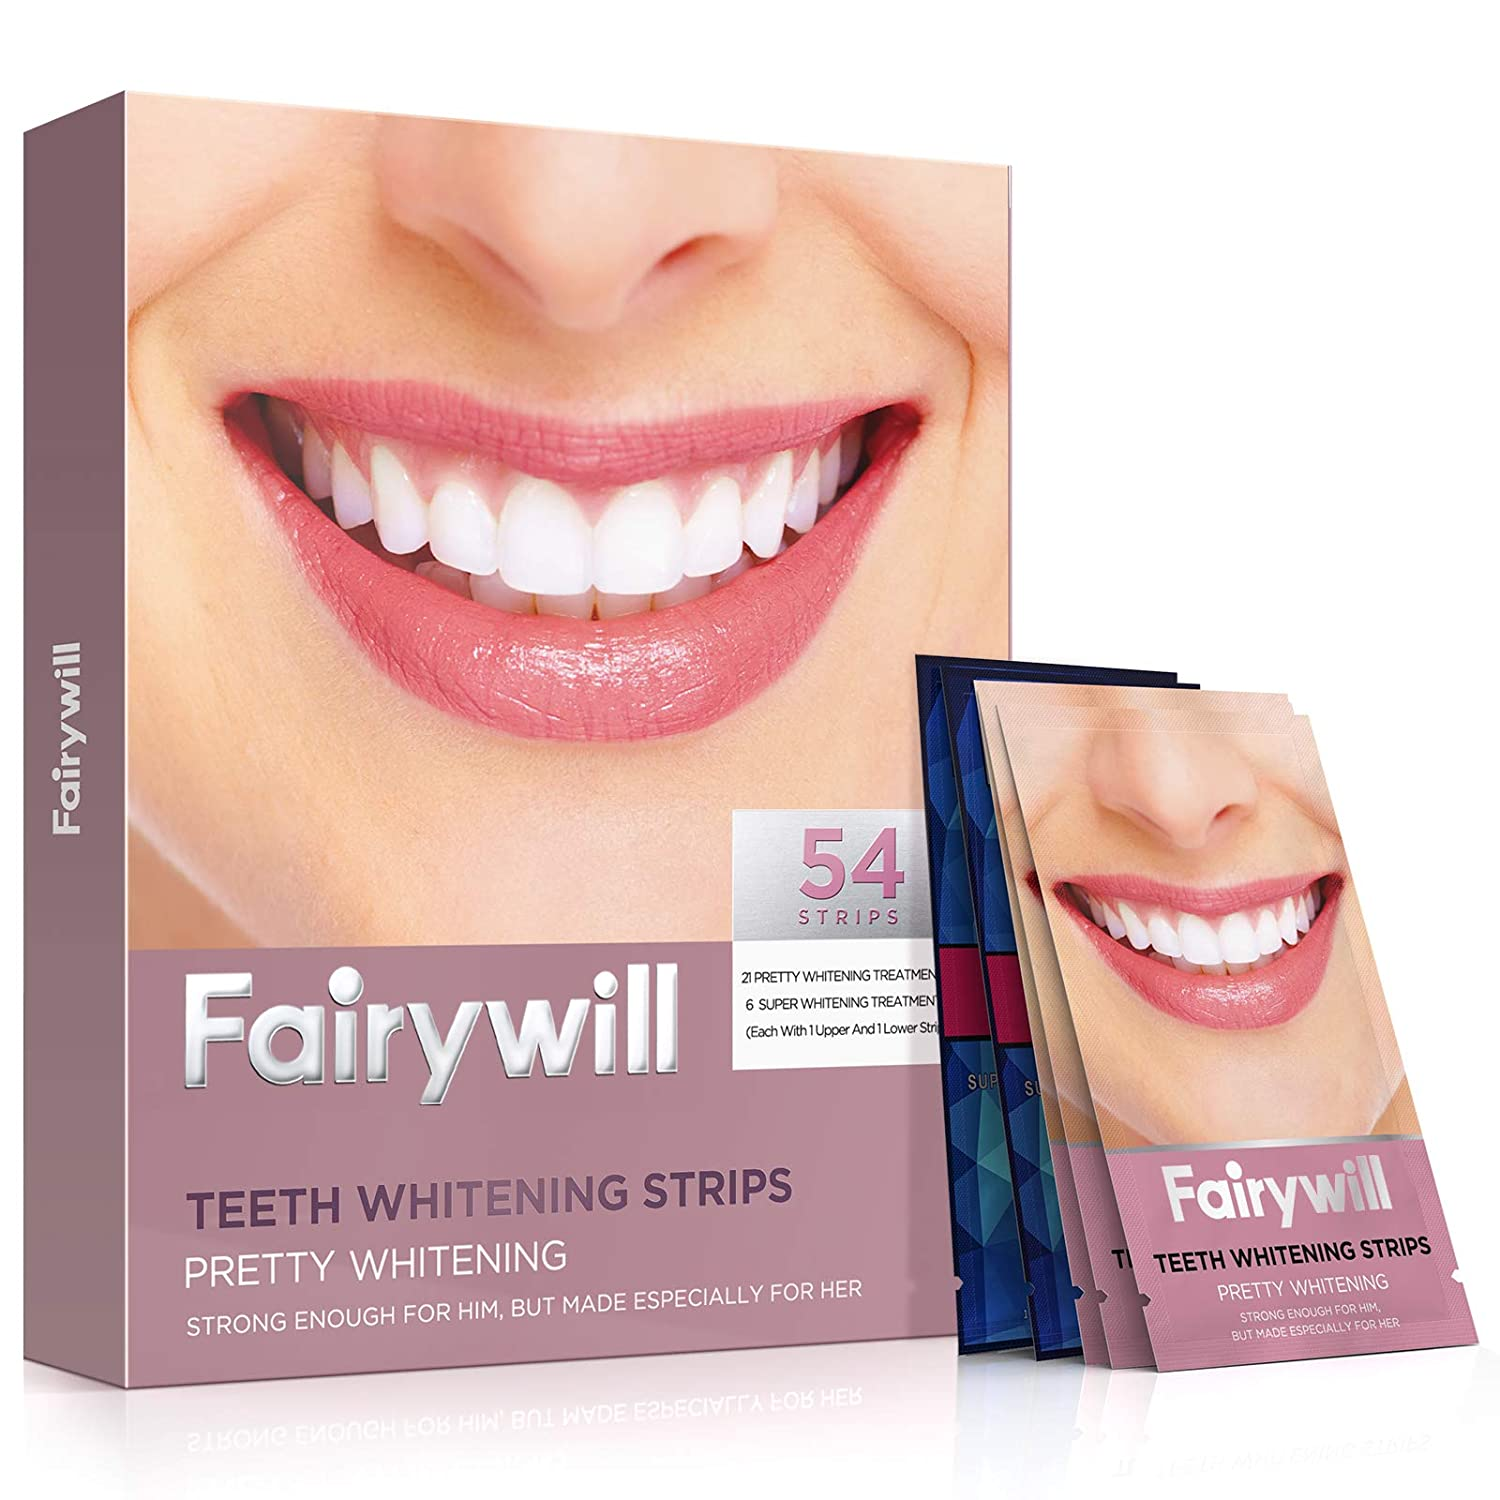 Fairywill Teeth Whitening Strips 54 Pcs, Advanced Dental Formula, Enamel Safe for Sensitive Teeth, Include Professional White Strips and 1 Hour Express 3D white Whitestrips